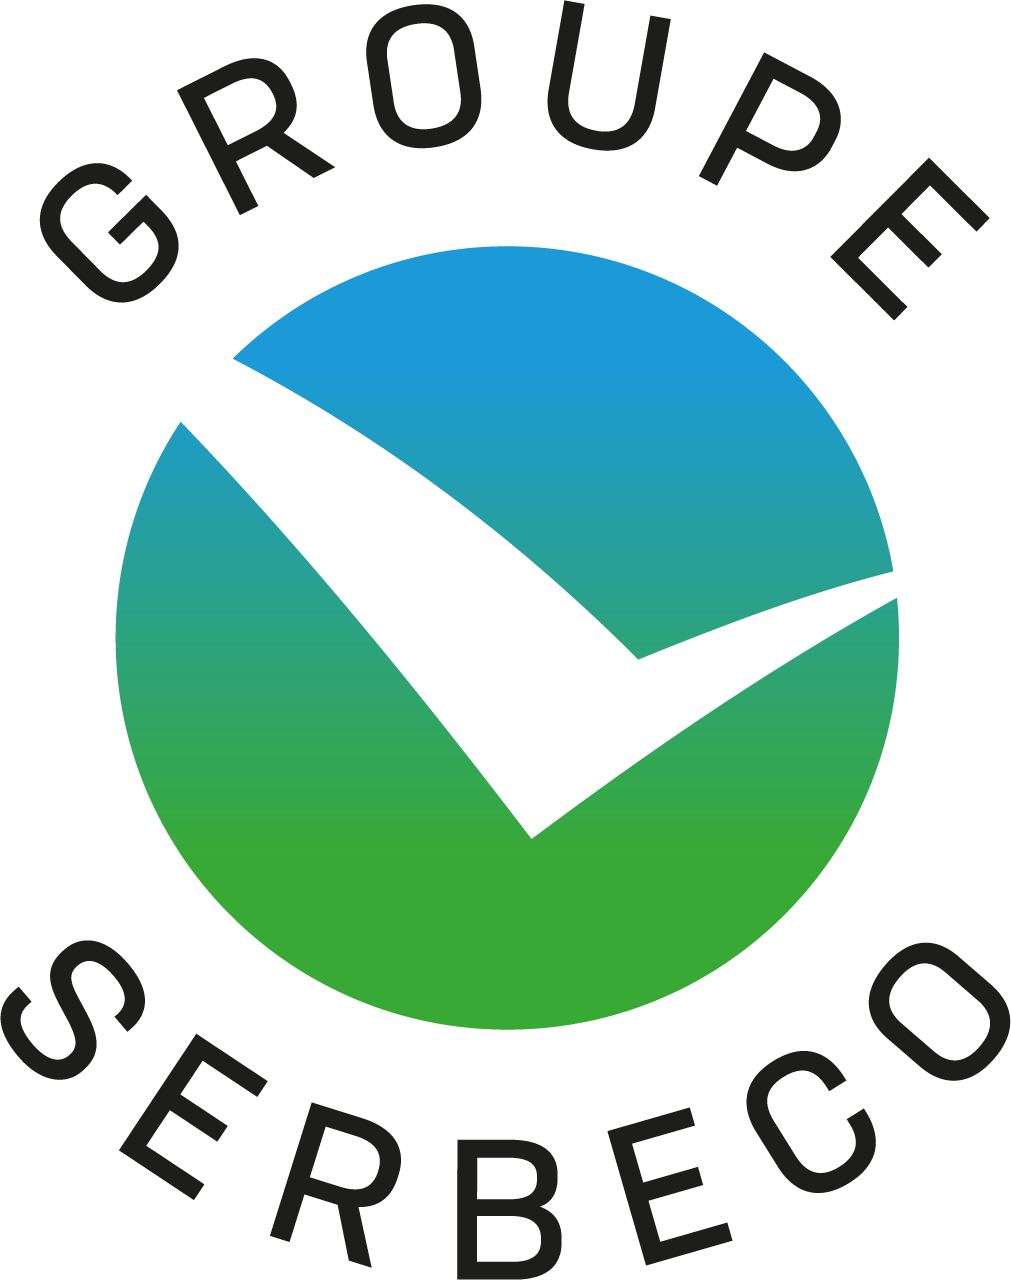 Logo for GROUPE SERBECO (Serbeco SA, ProP SA, Energie durable SA)